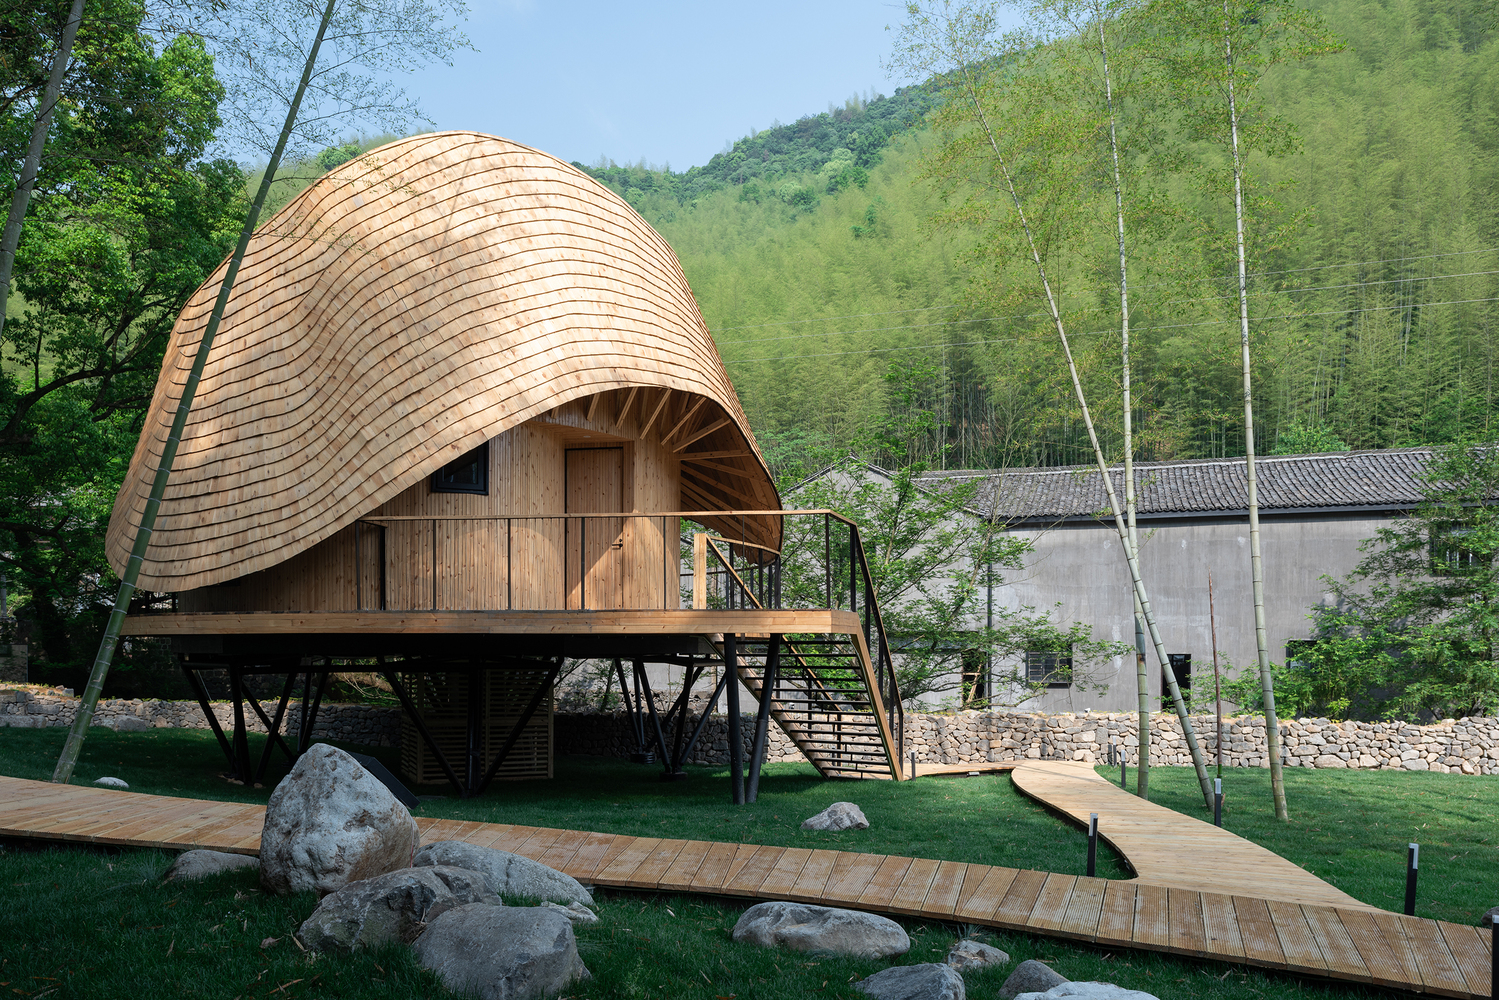 Bamboo house with raised deck